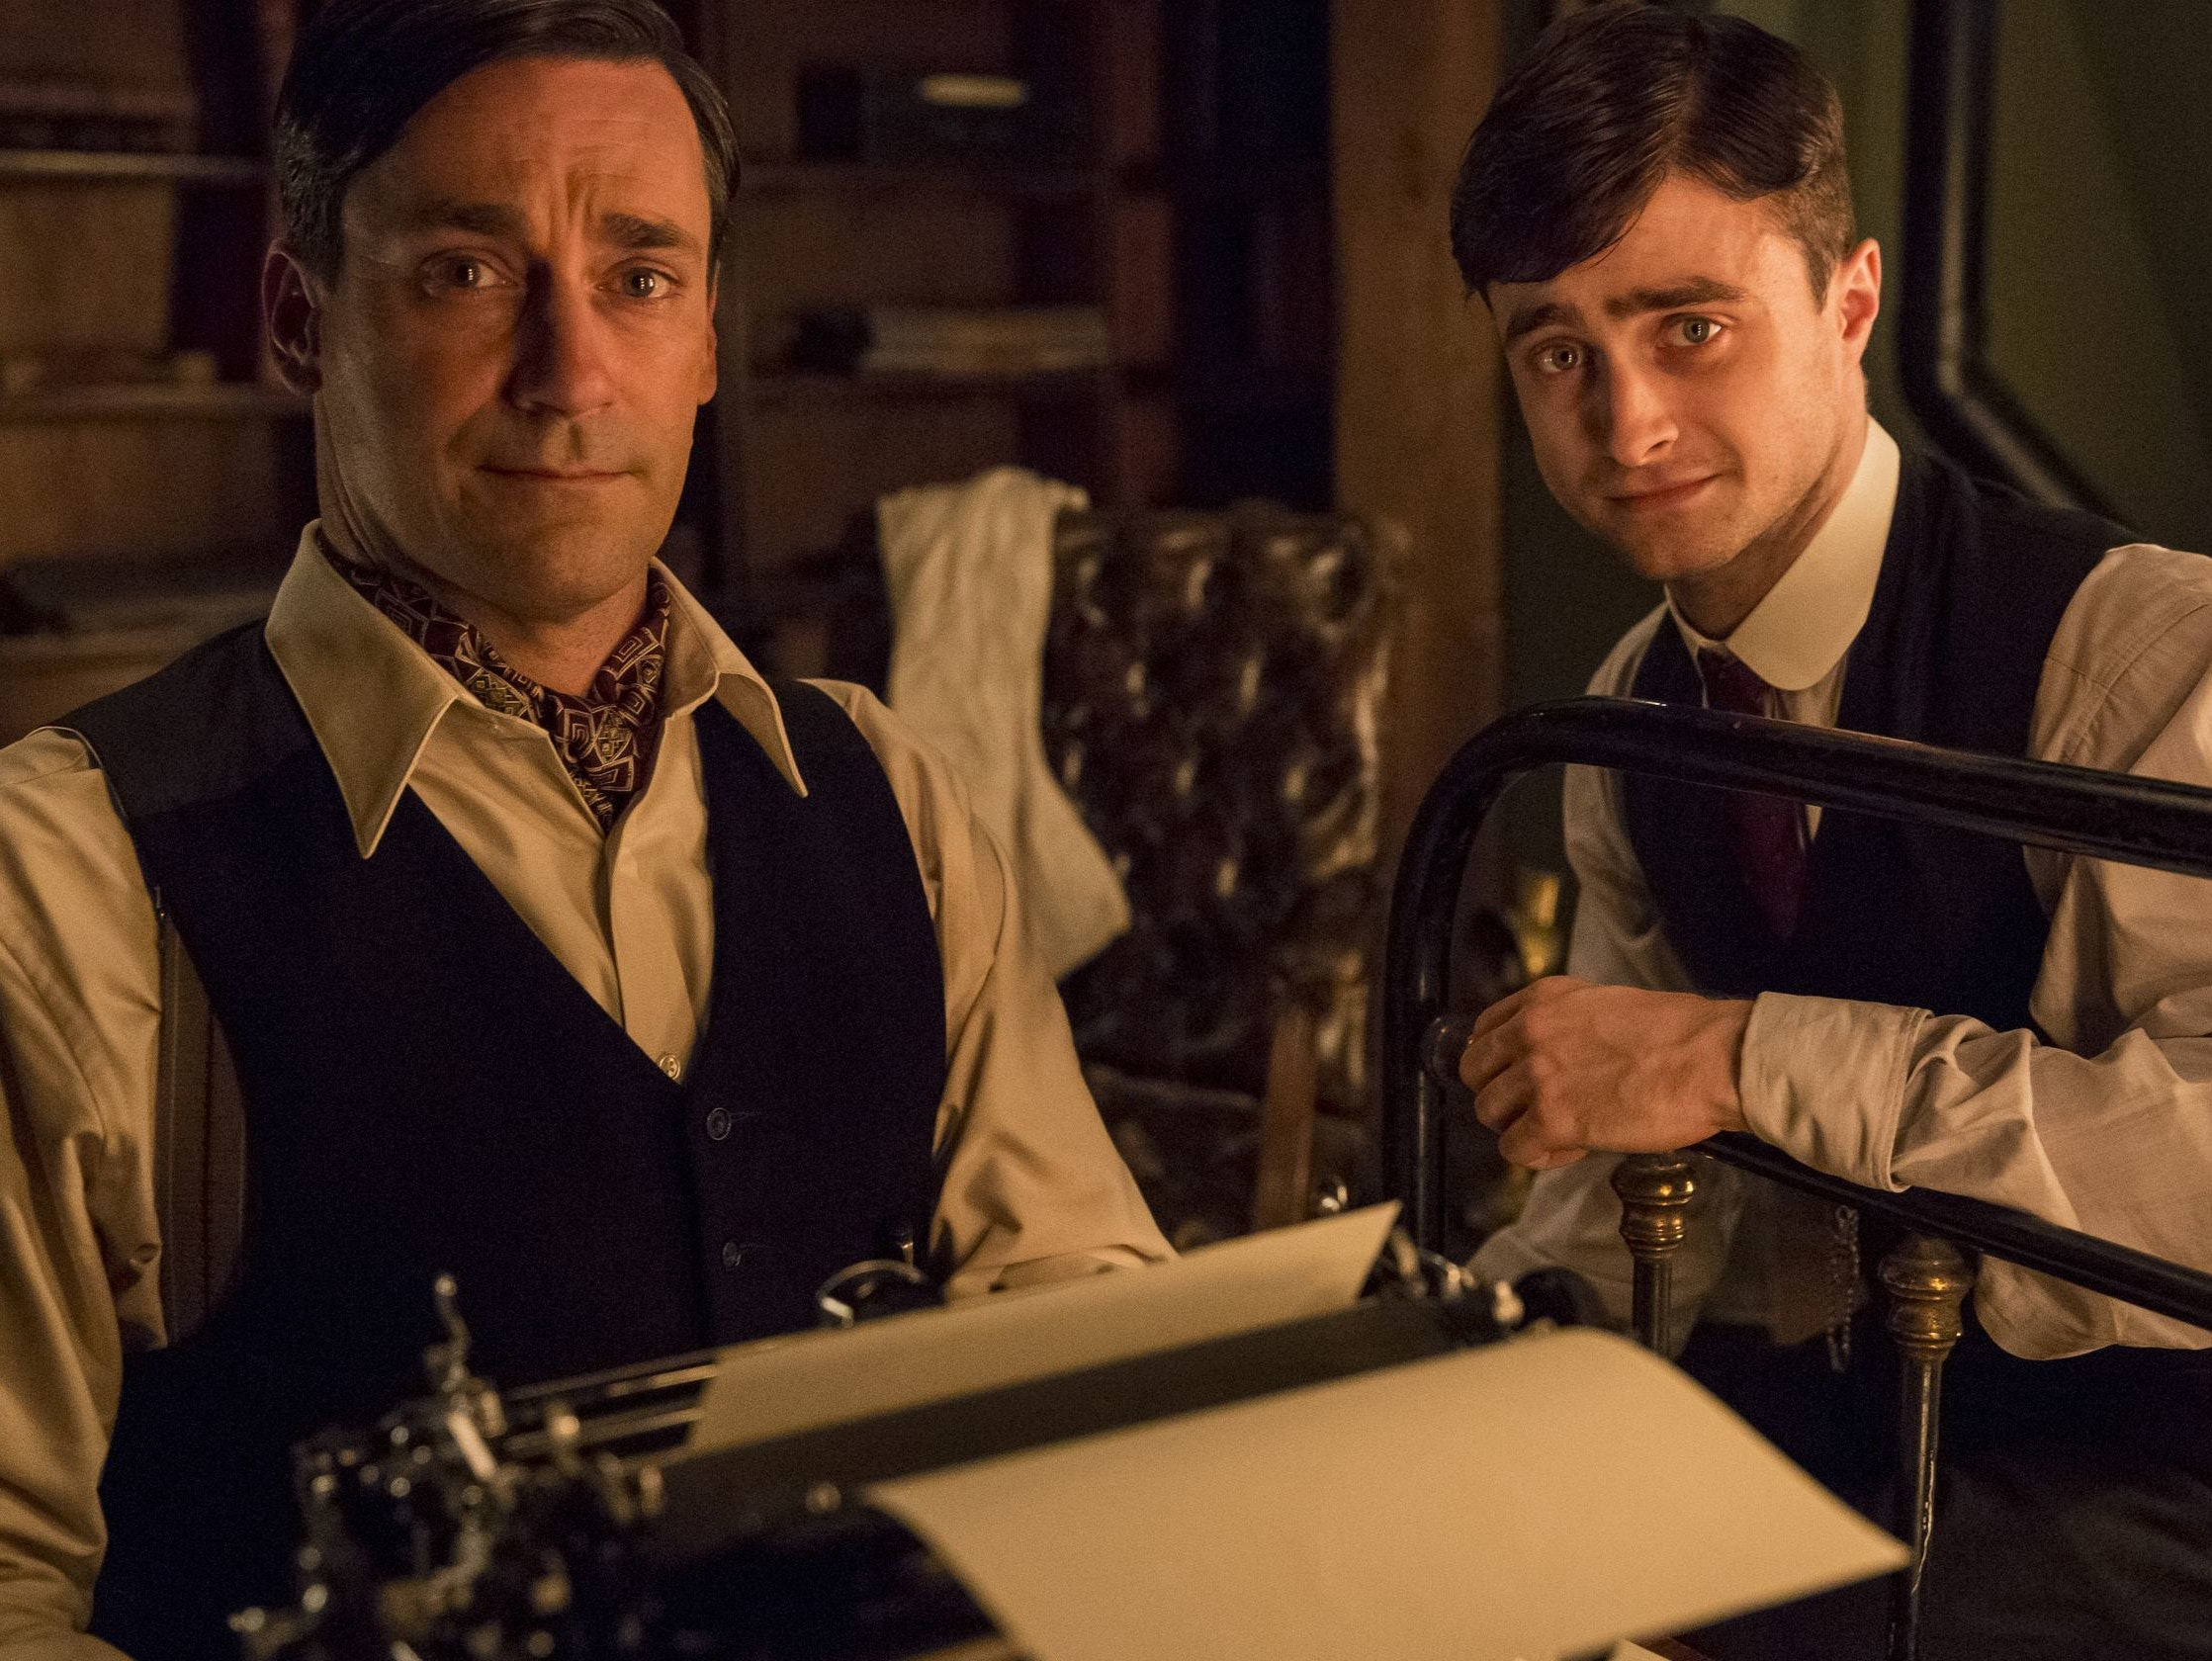 an analysis of the civil rights in the wizarding world in the harry potter series The wizarding world is a slave-owning society,  justifying infringement of civil rights  in harry potter and the order of the phoenix,.